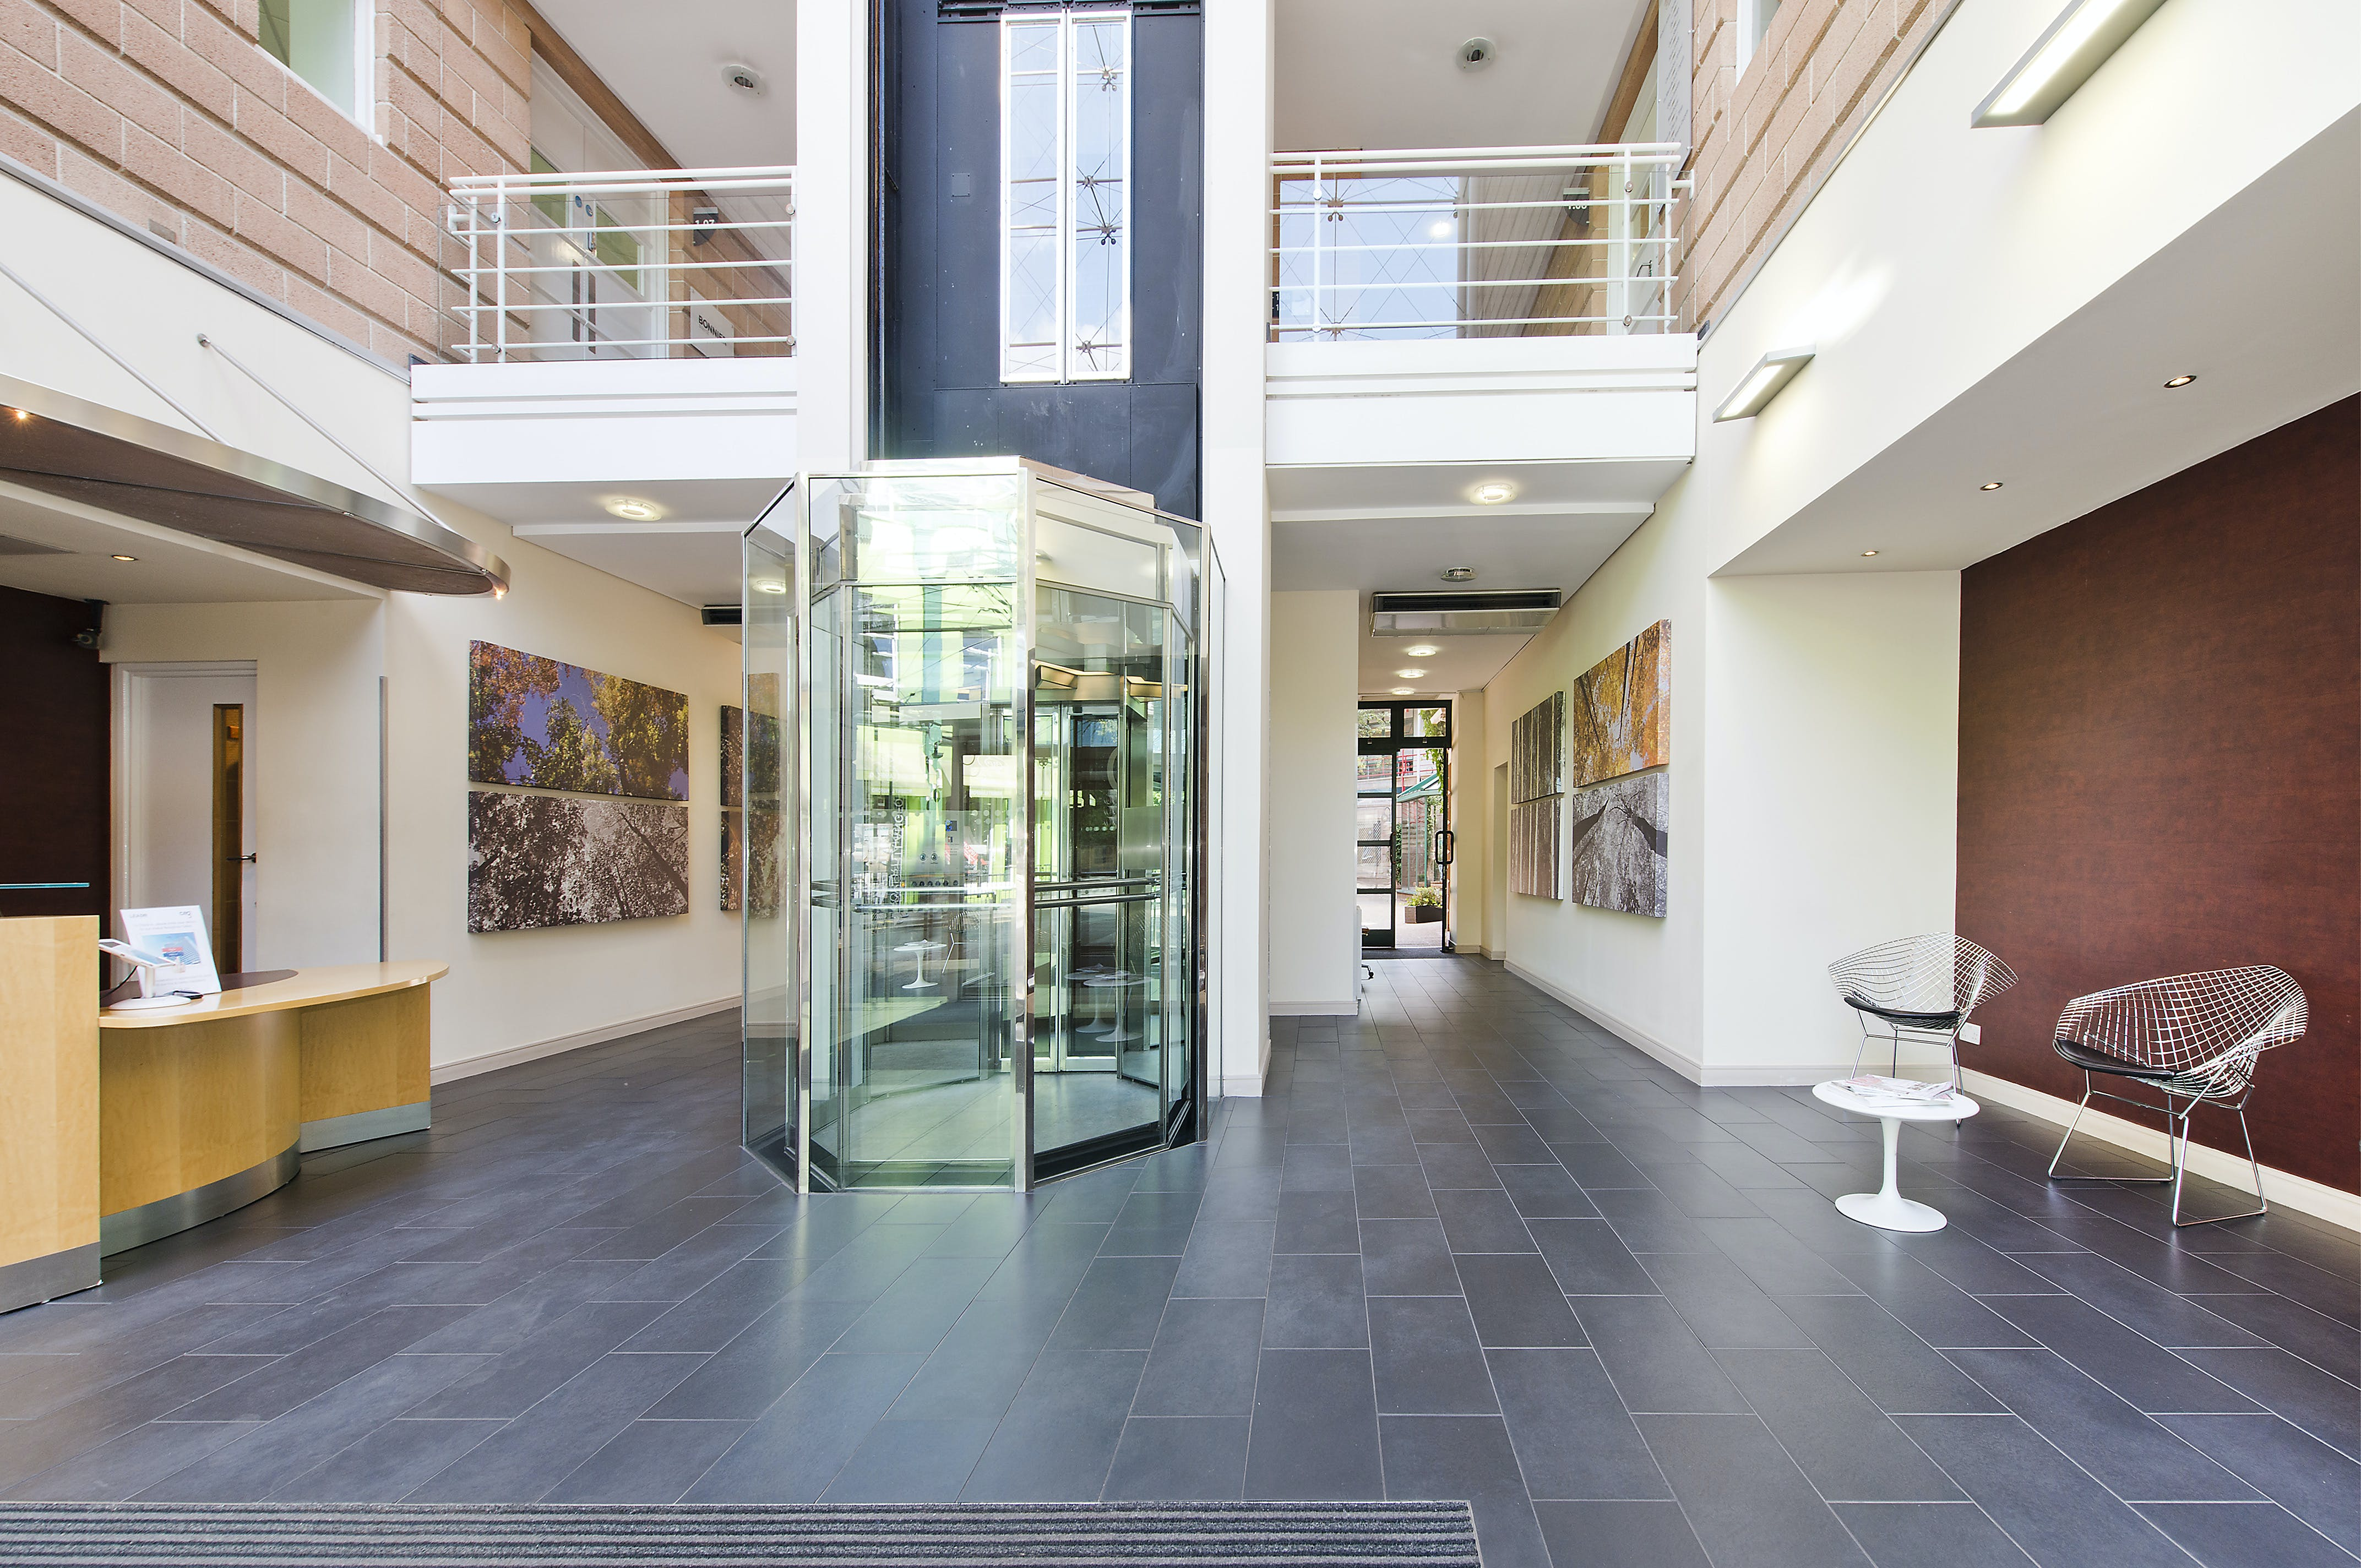 Unit 2.20 The Plaza, 535 Kings Road, London, Office To Let - 535 kings rd-1506.jpg